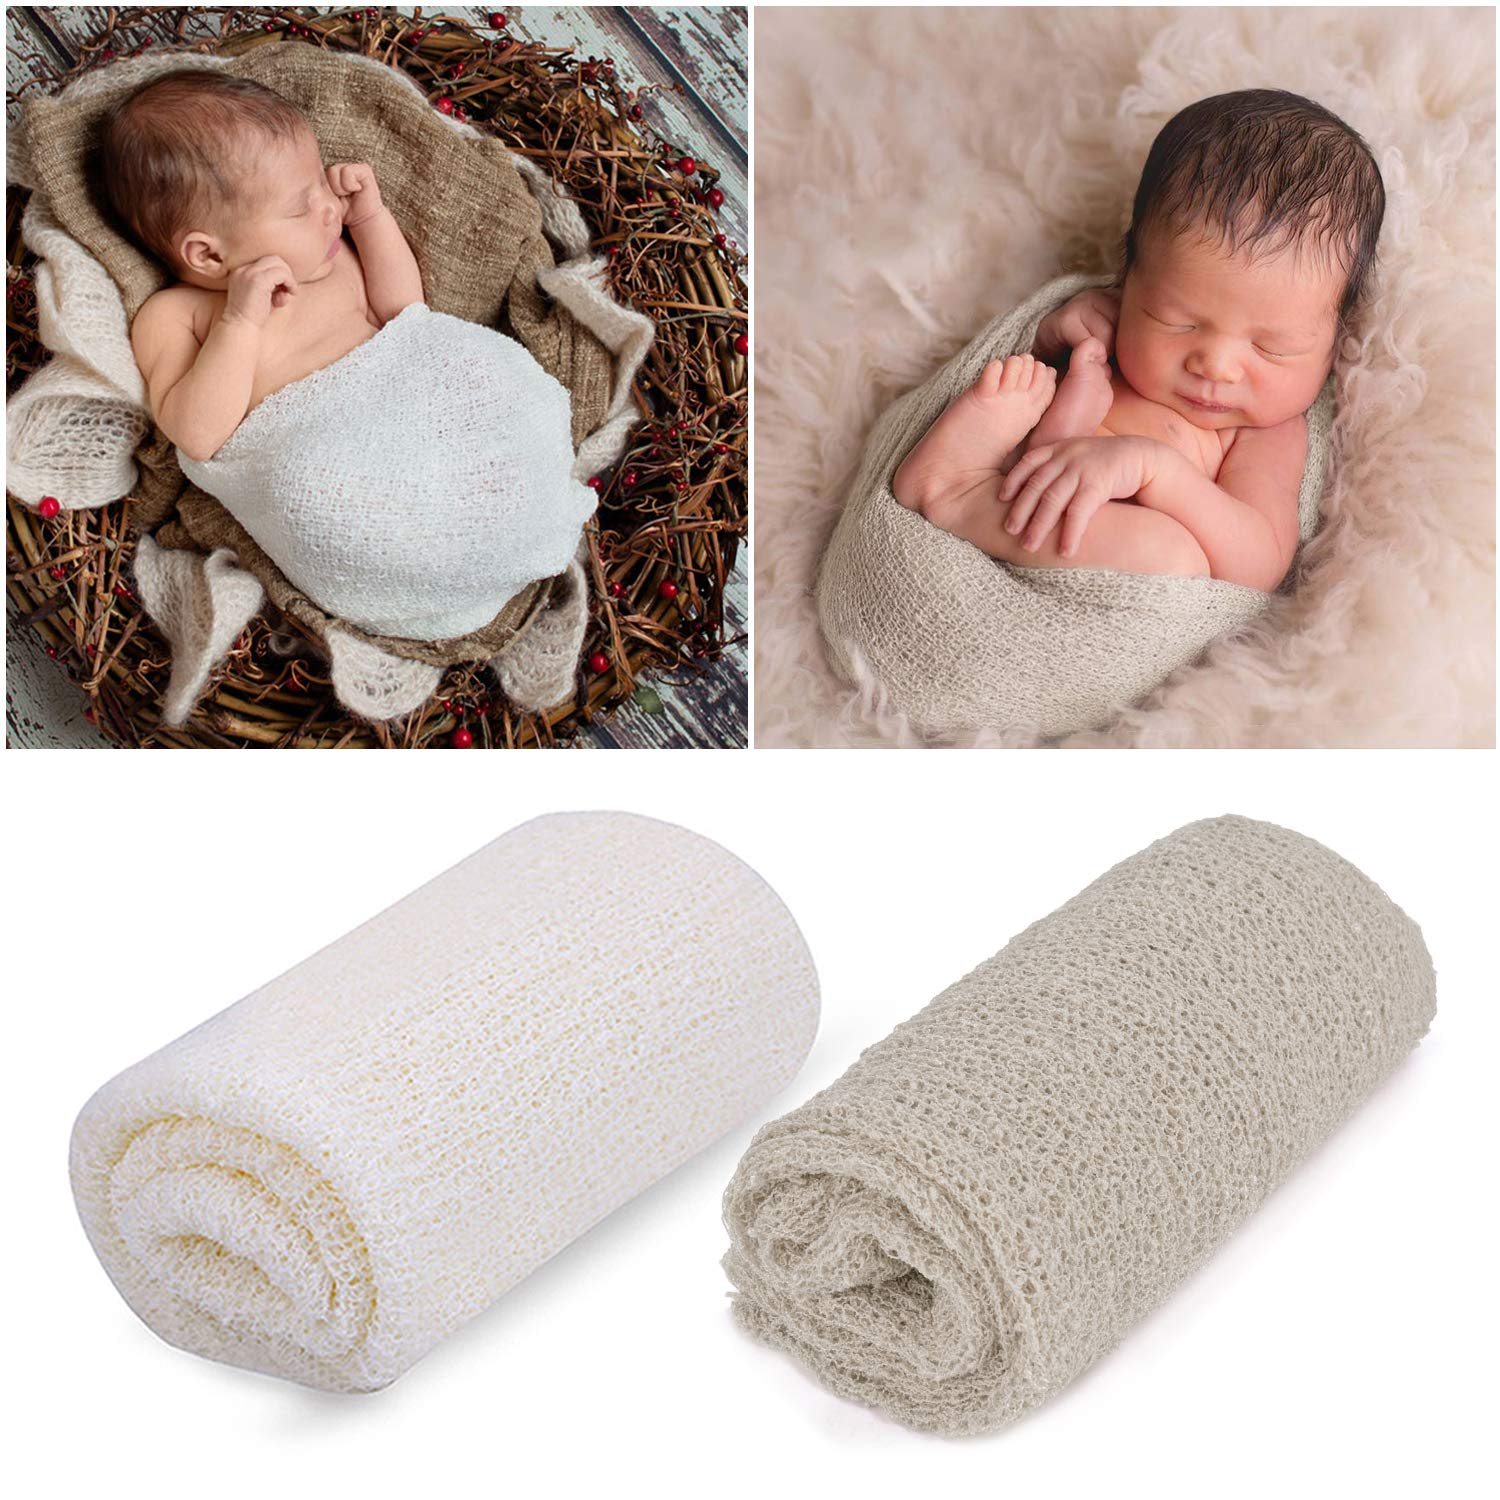 Outgeek Newborn Baby Photography Props 2 Pcs Long Ripple Wrap Newborn Props Baby Photo Props Diy Newborn Photography Wrap White And Light Brown